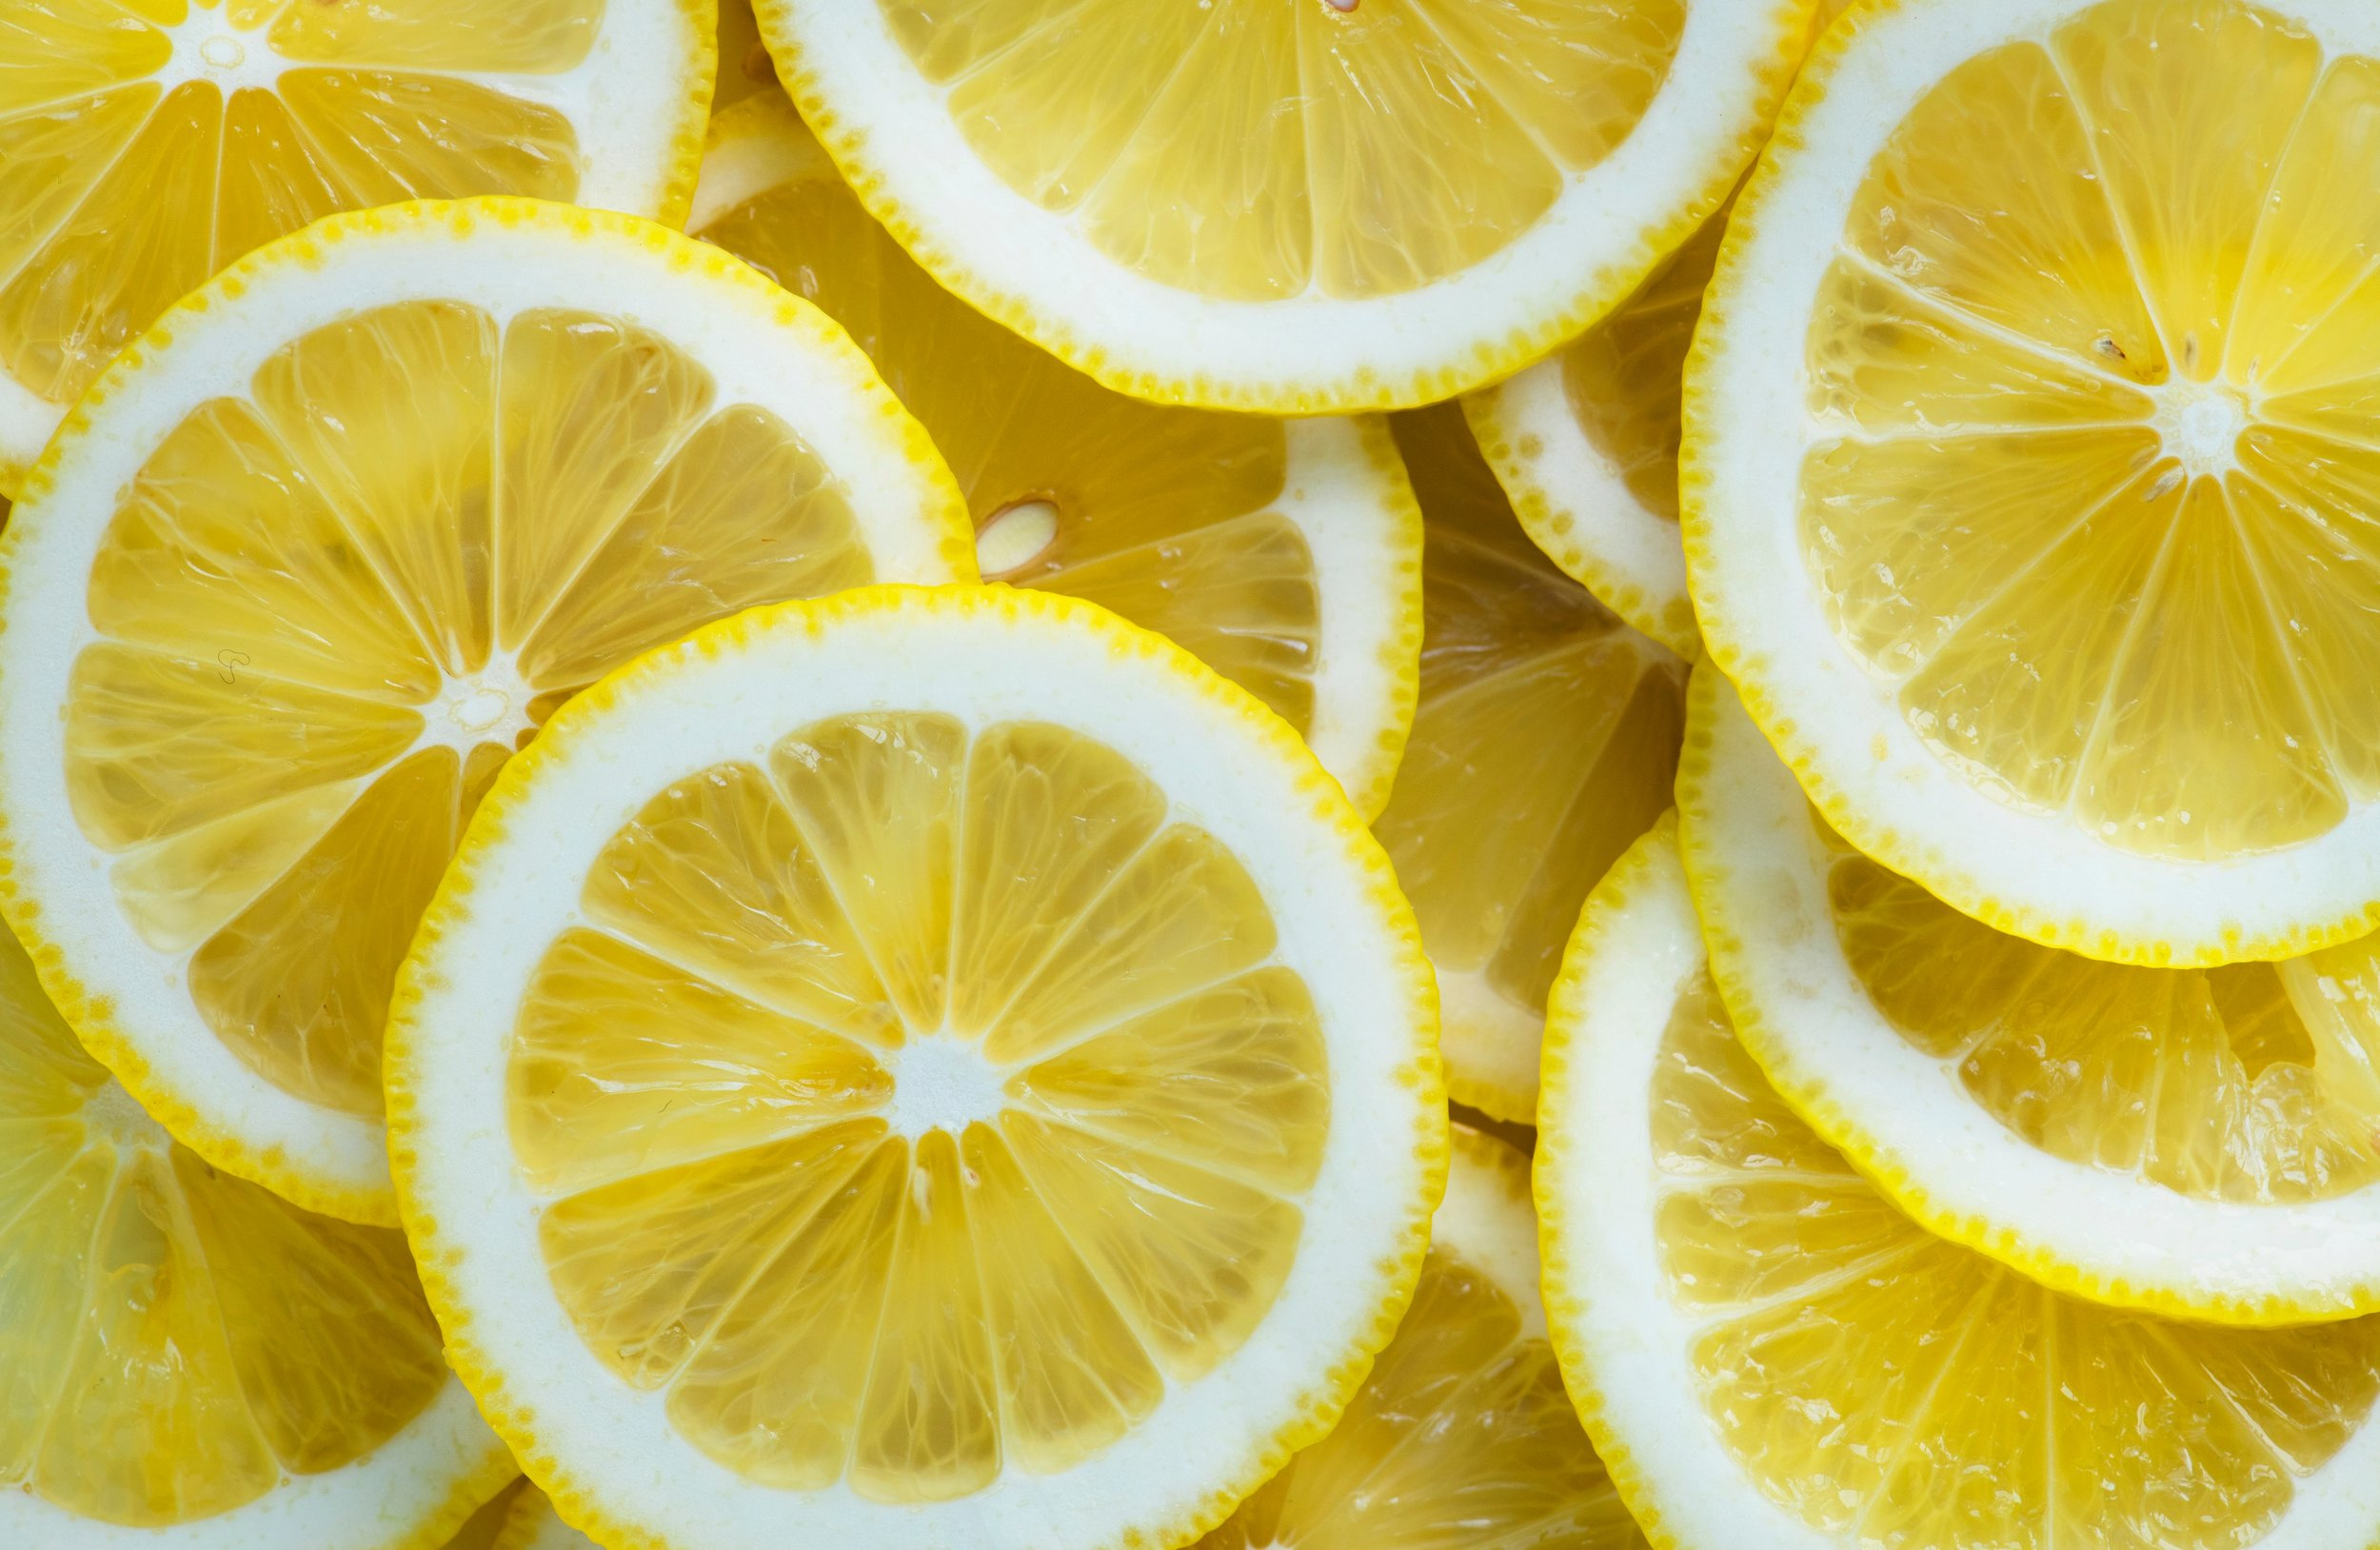 acidic-citrus-fruit-close-up-1536871 (1).jpg